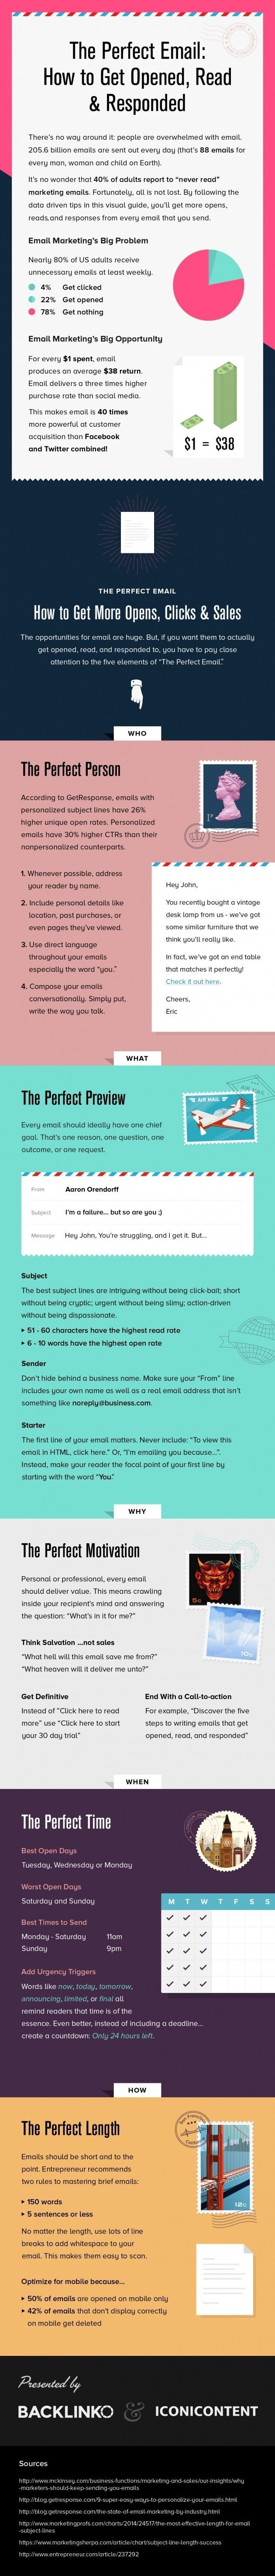 Email Marketing - About 205.6 billion emails are sent every day. Spare yours the fate of not being read! Follow these quick tips for writing a captivating email that inspires action.